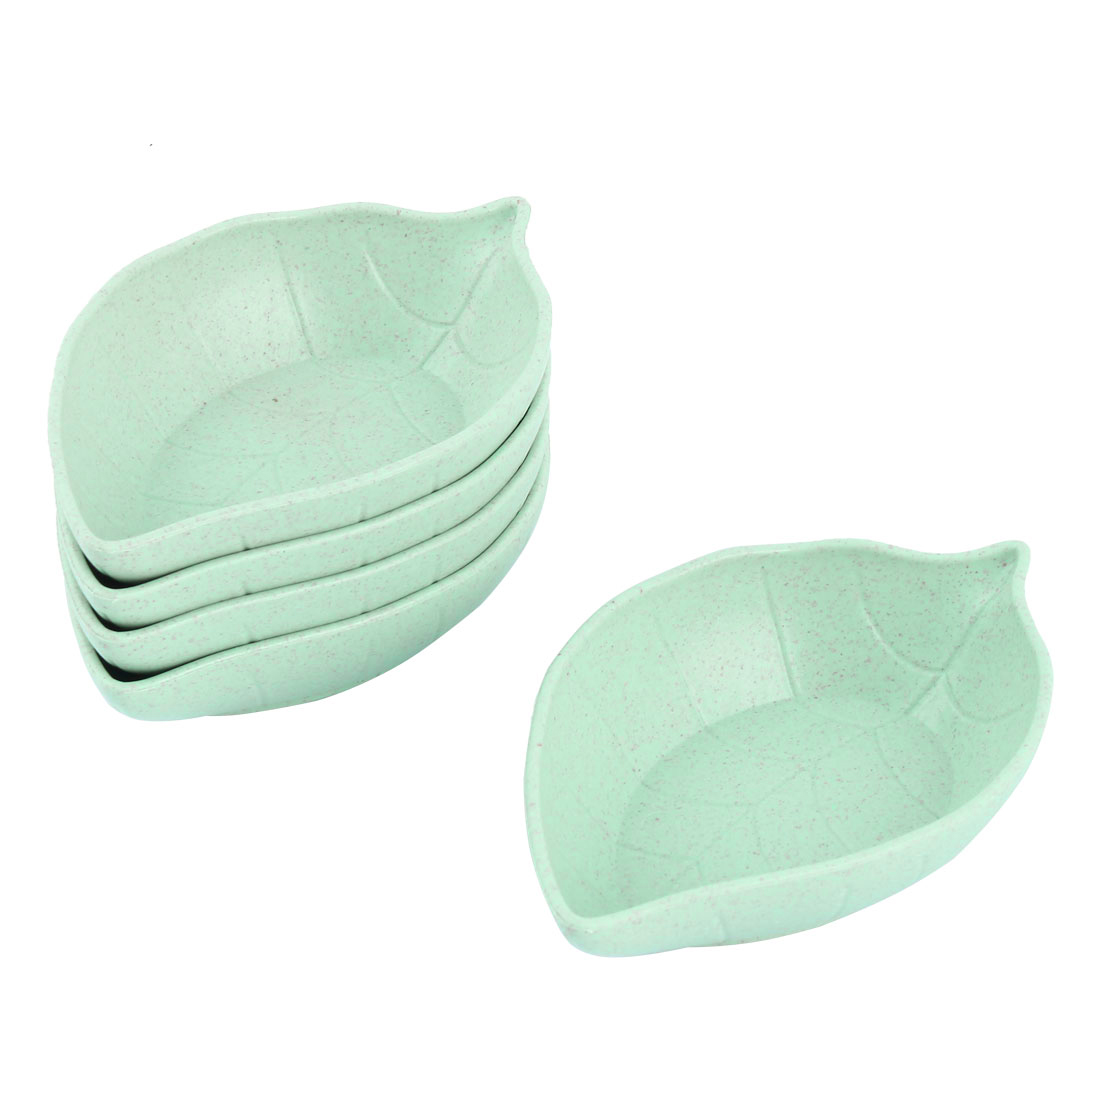 Household Kitchen Plastic Leaf Design Snack Food Sauce Dish Saucer Green 5pcs